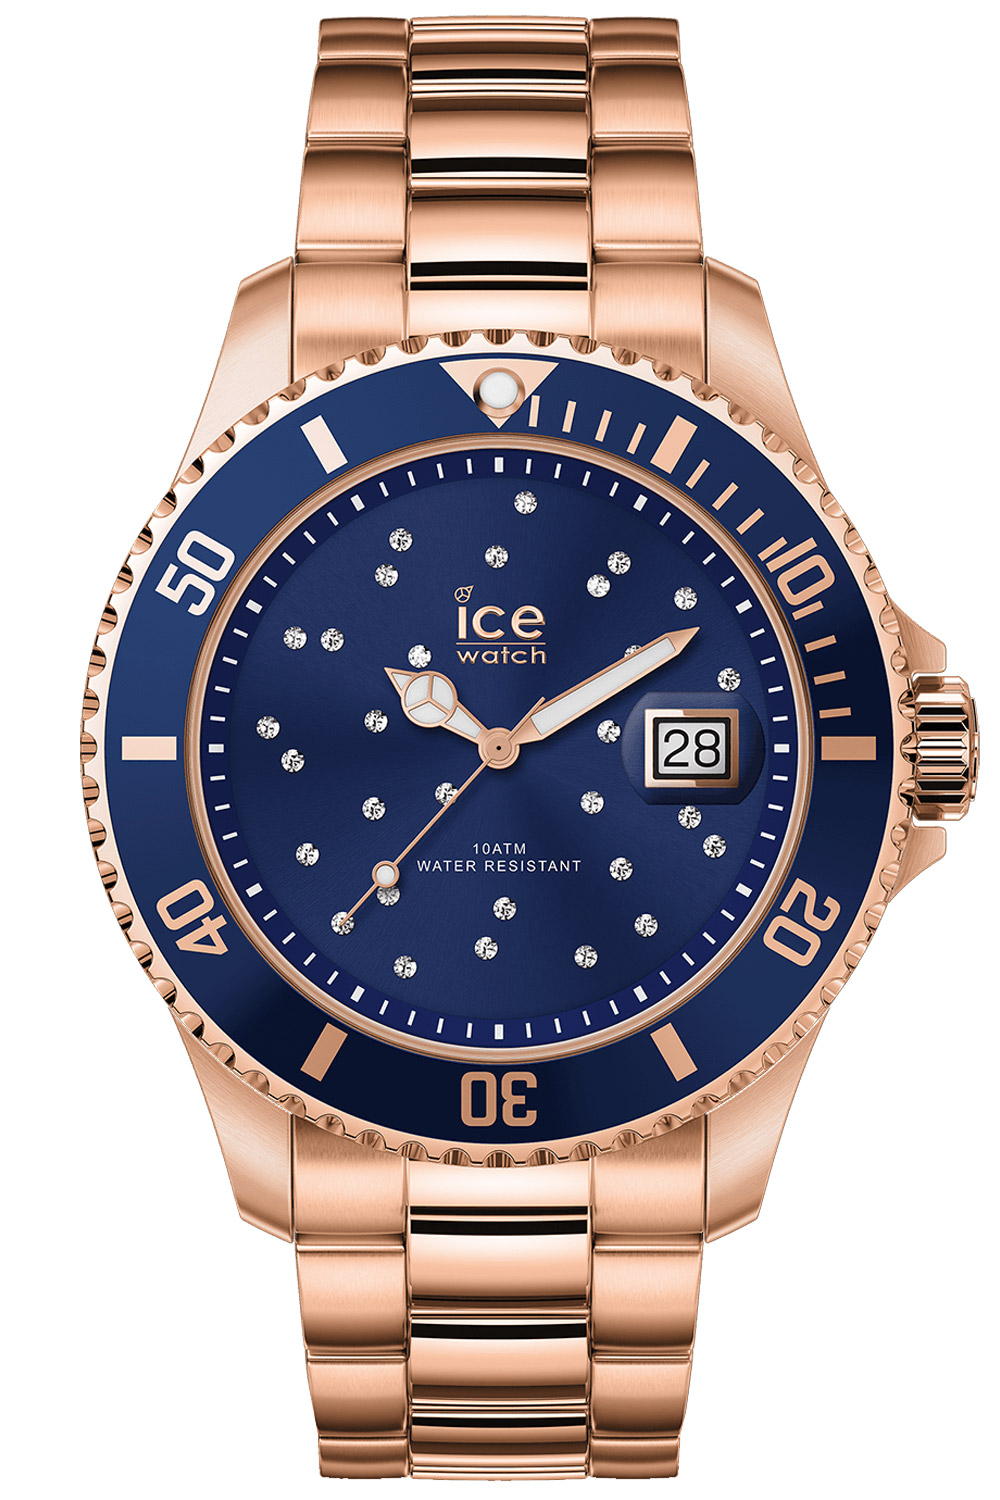 bei Uhrcenter: Ice-Watch 016774 Damenuhr Ice Steel Blue Cosmos Rose-Gold M - Damenuhr